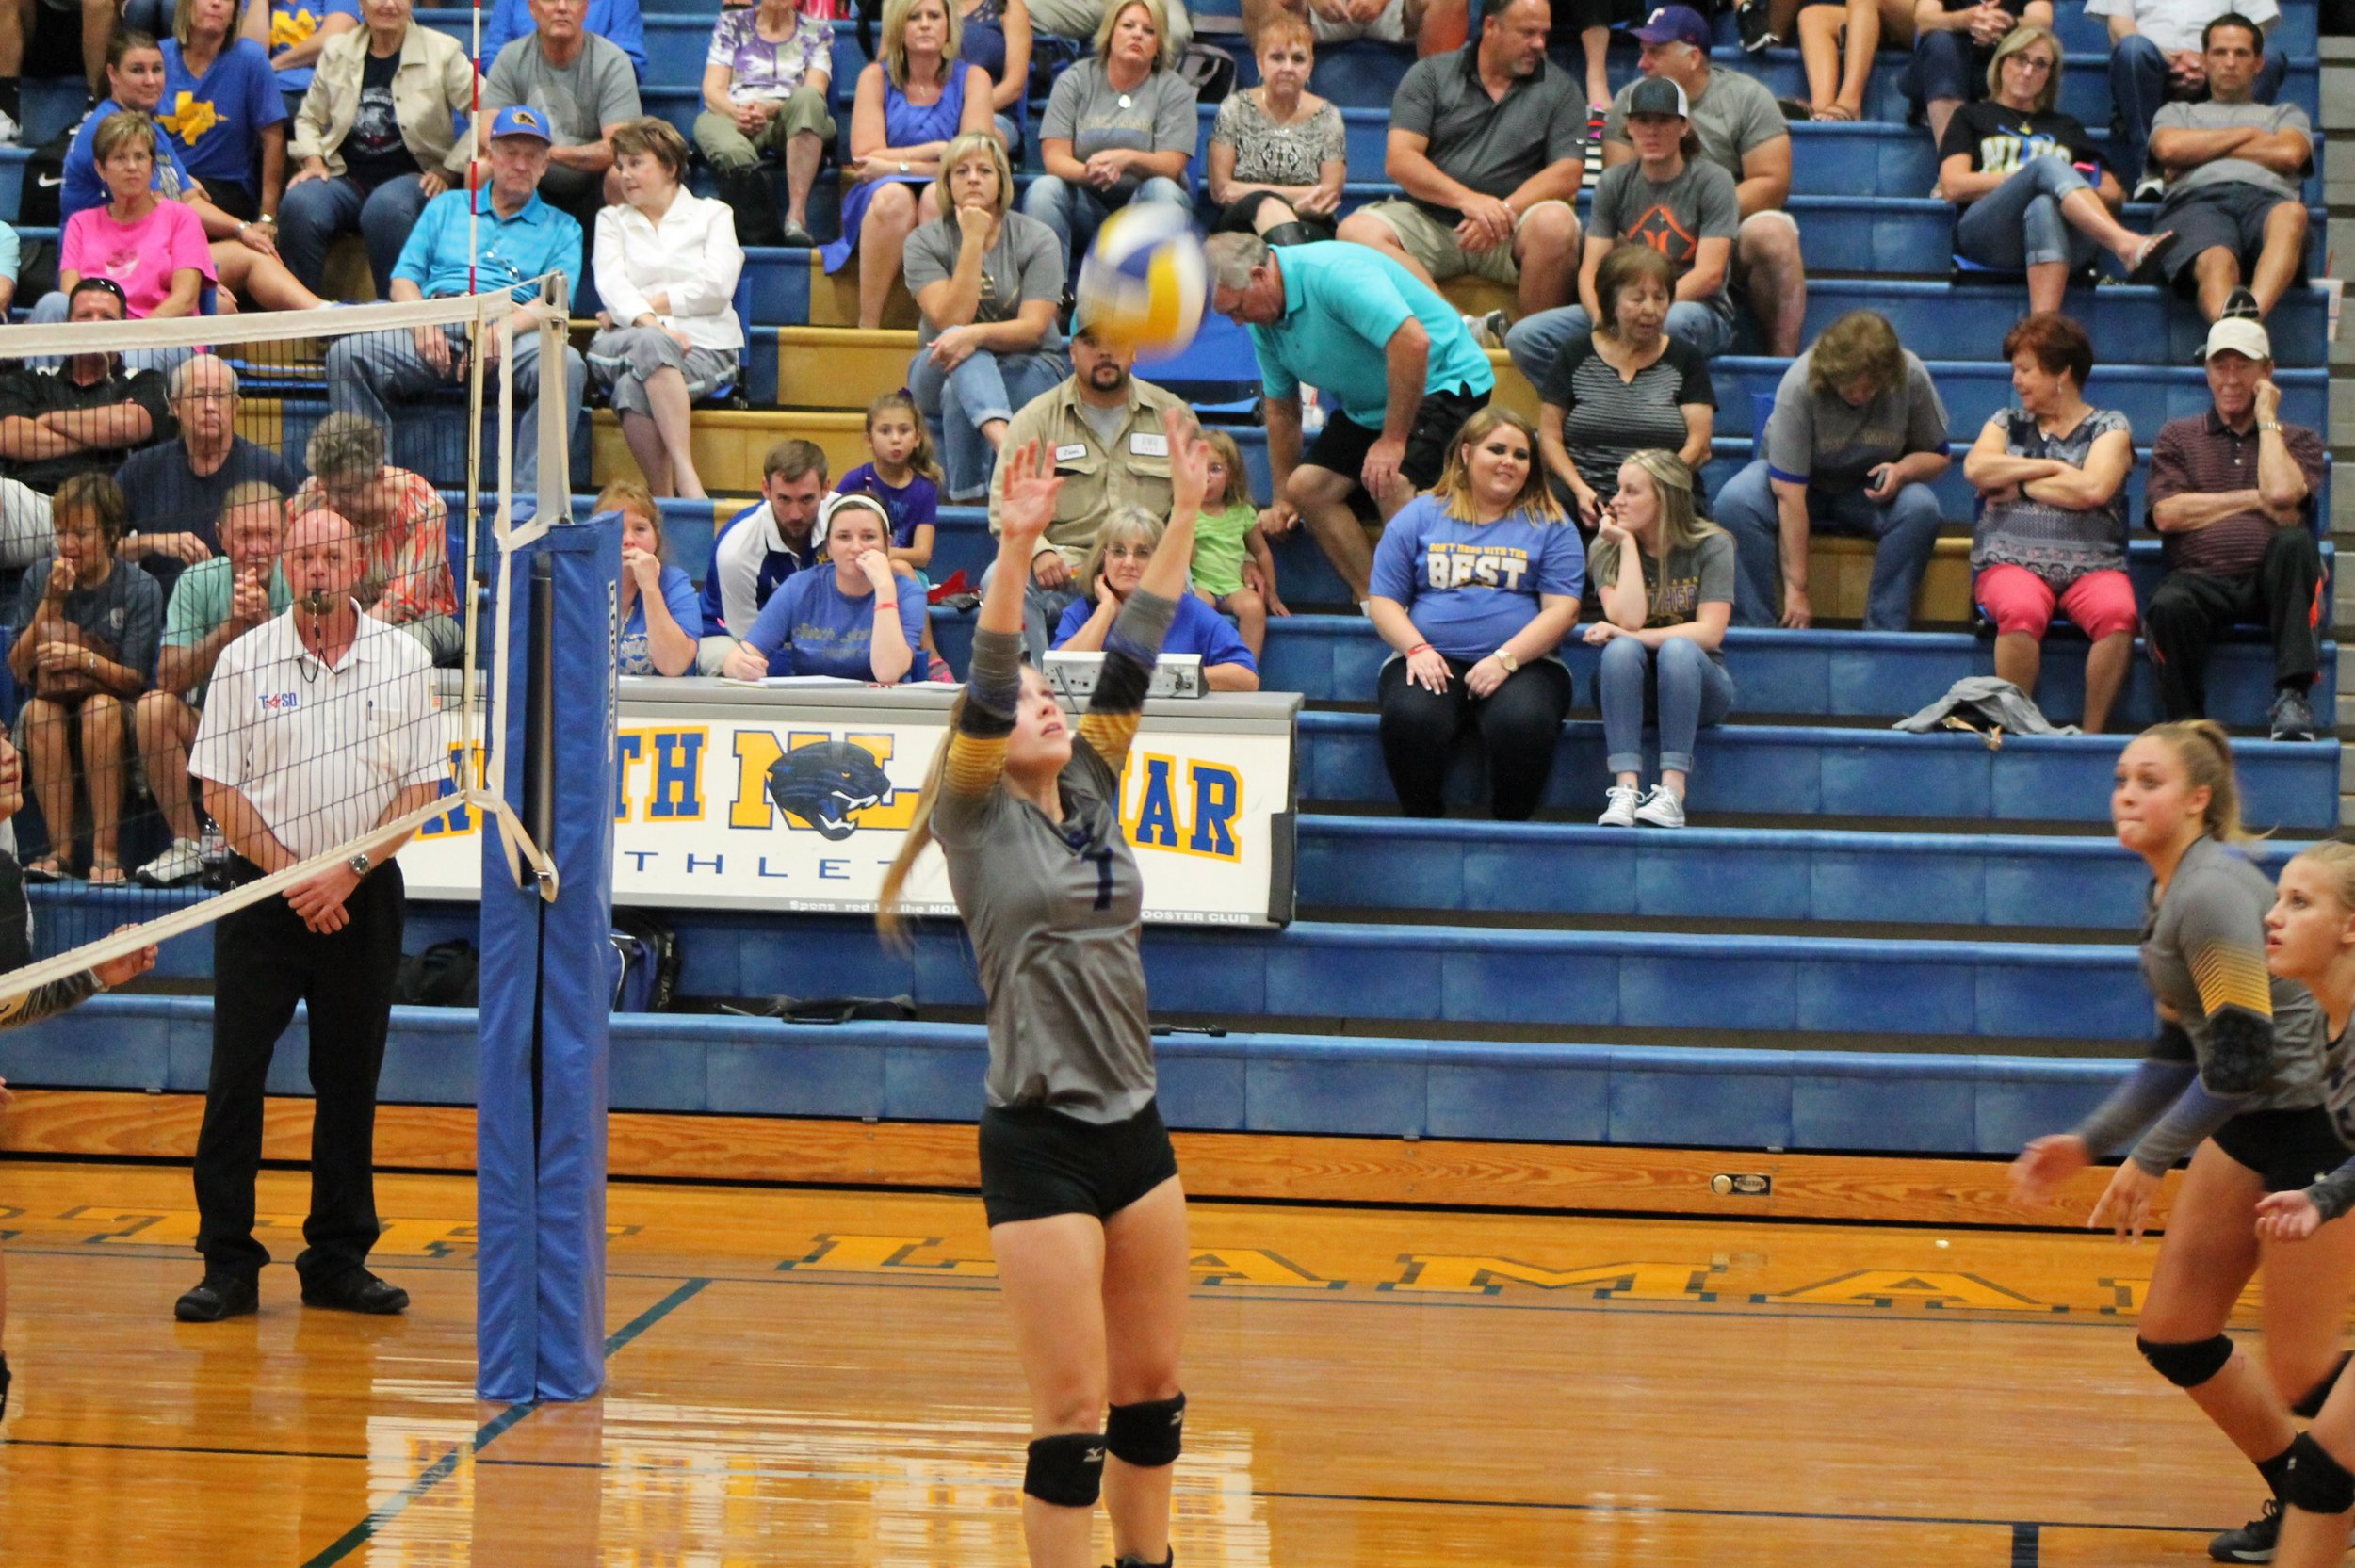 Haley Porter with one of her 19 assists.